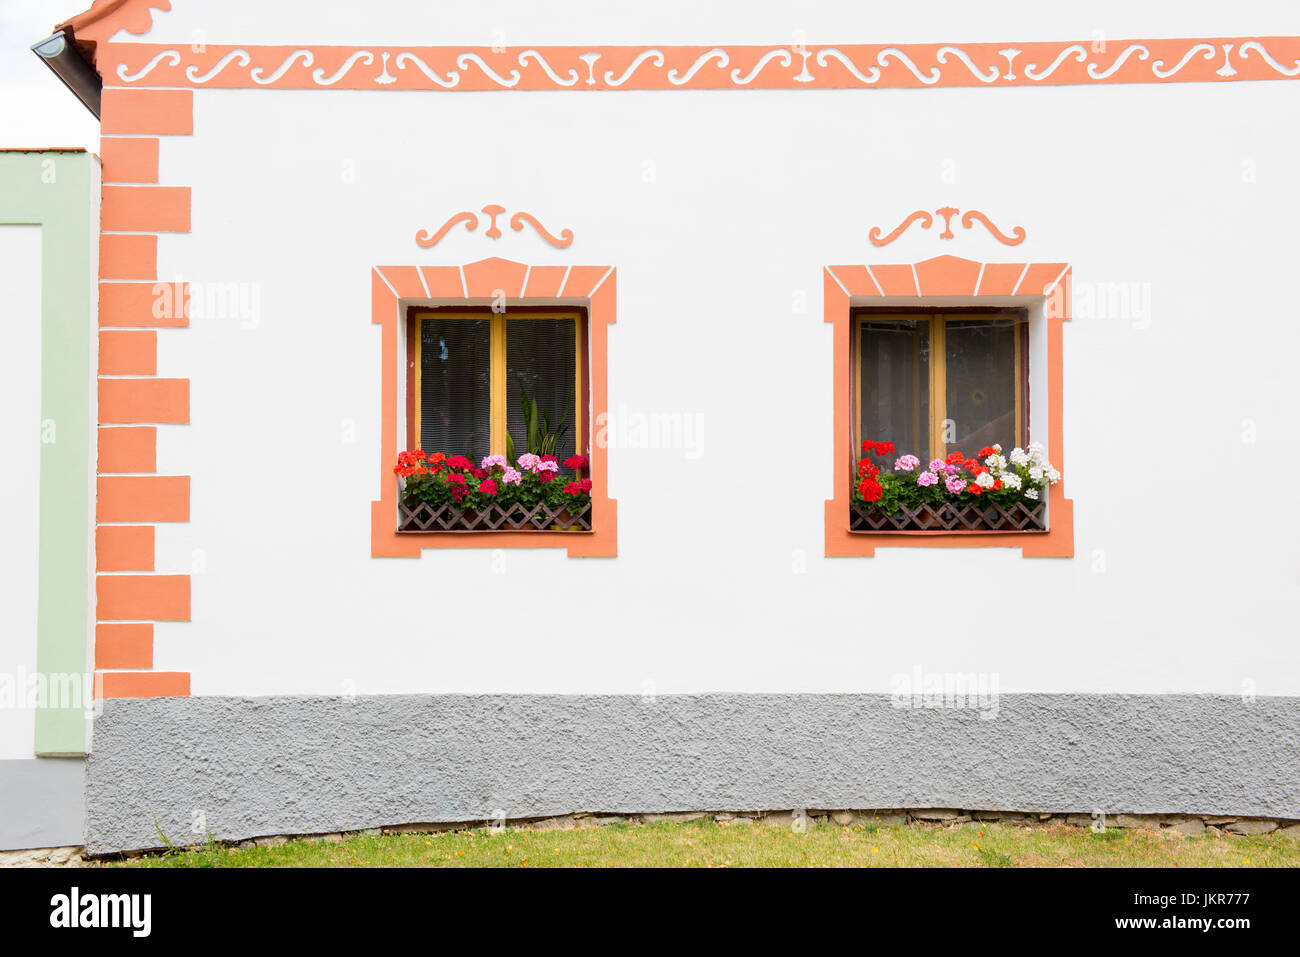 Rural decorated house in Holasovice, Czech Republic. UNESCO World Heritage Site in South Bohemia - Stock Image